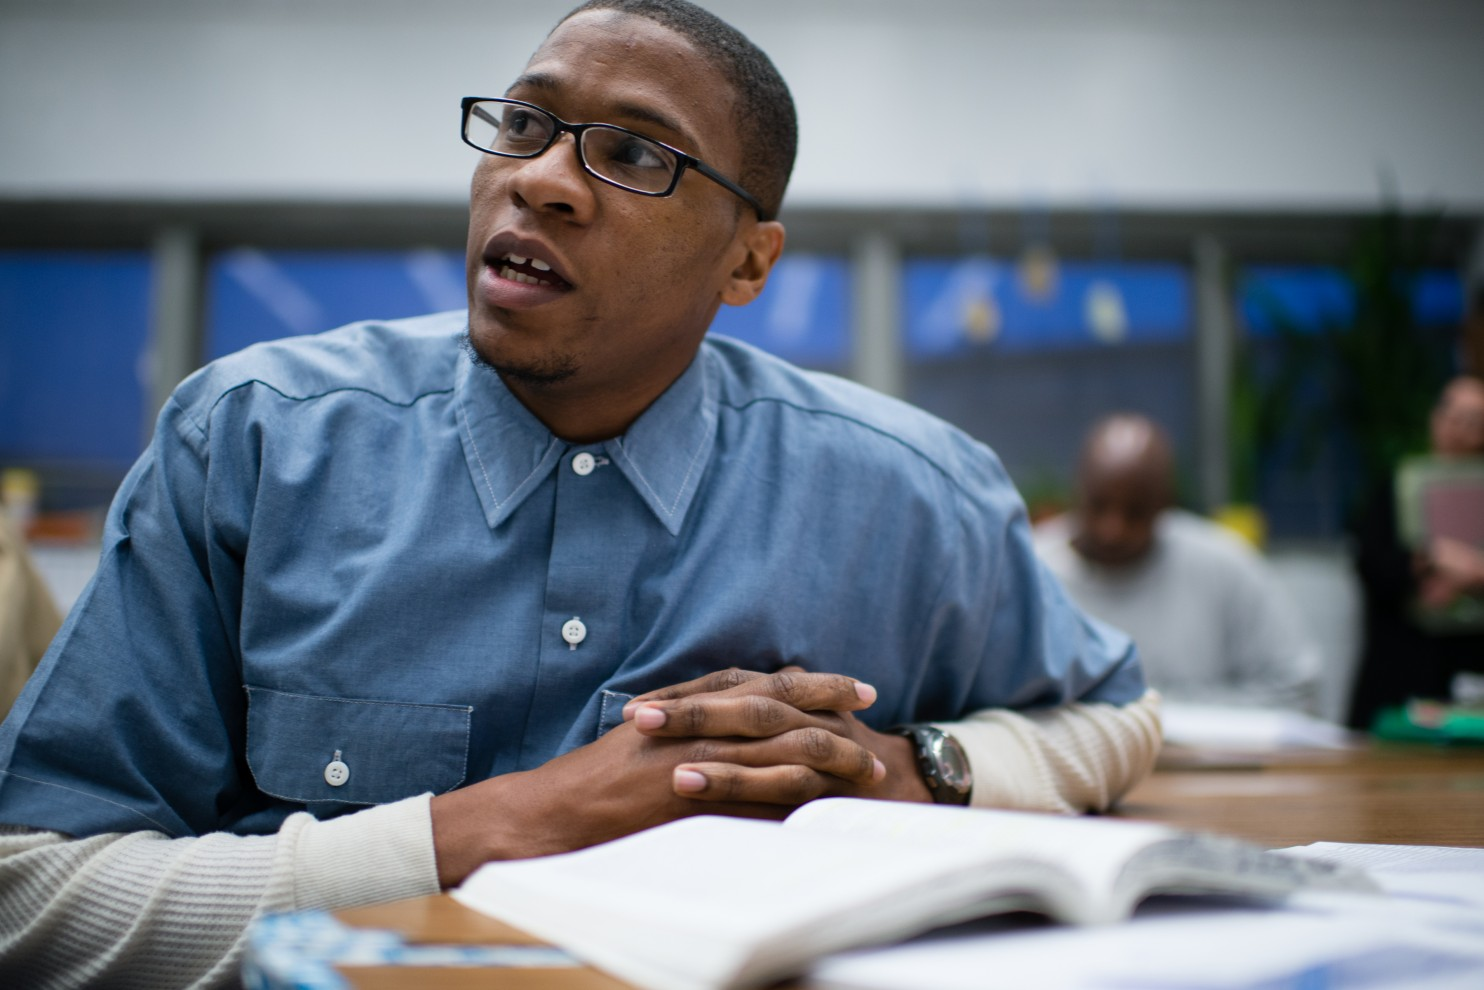 Could College For Convicts Reduce Recidivism?